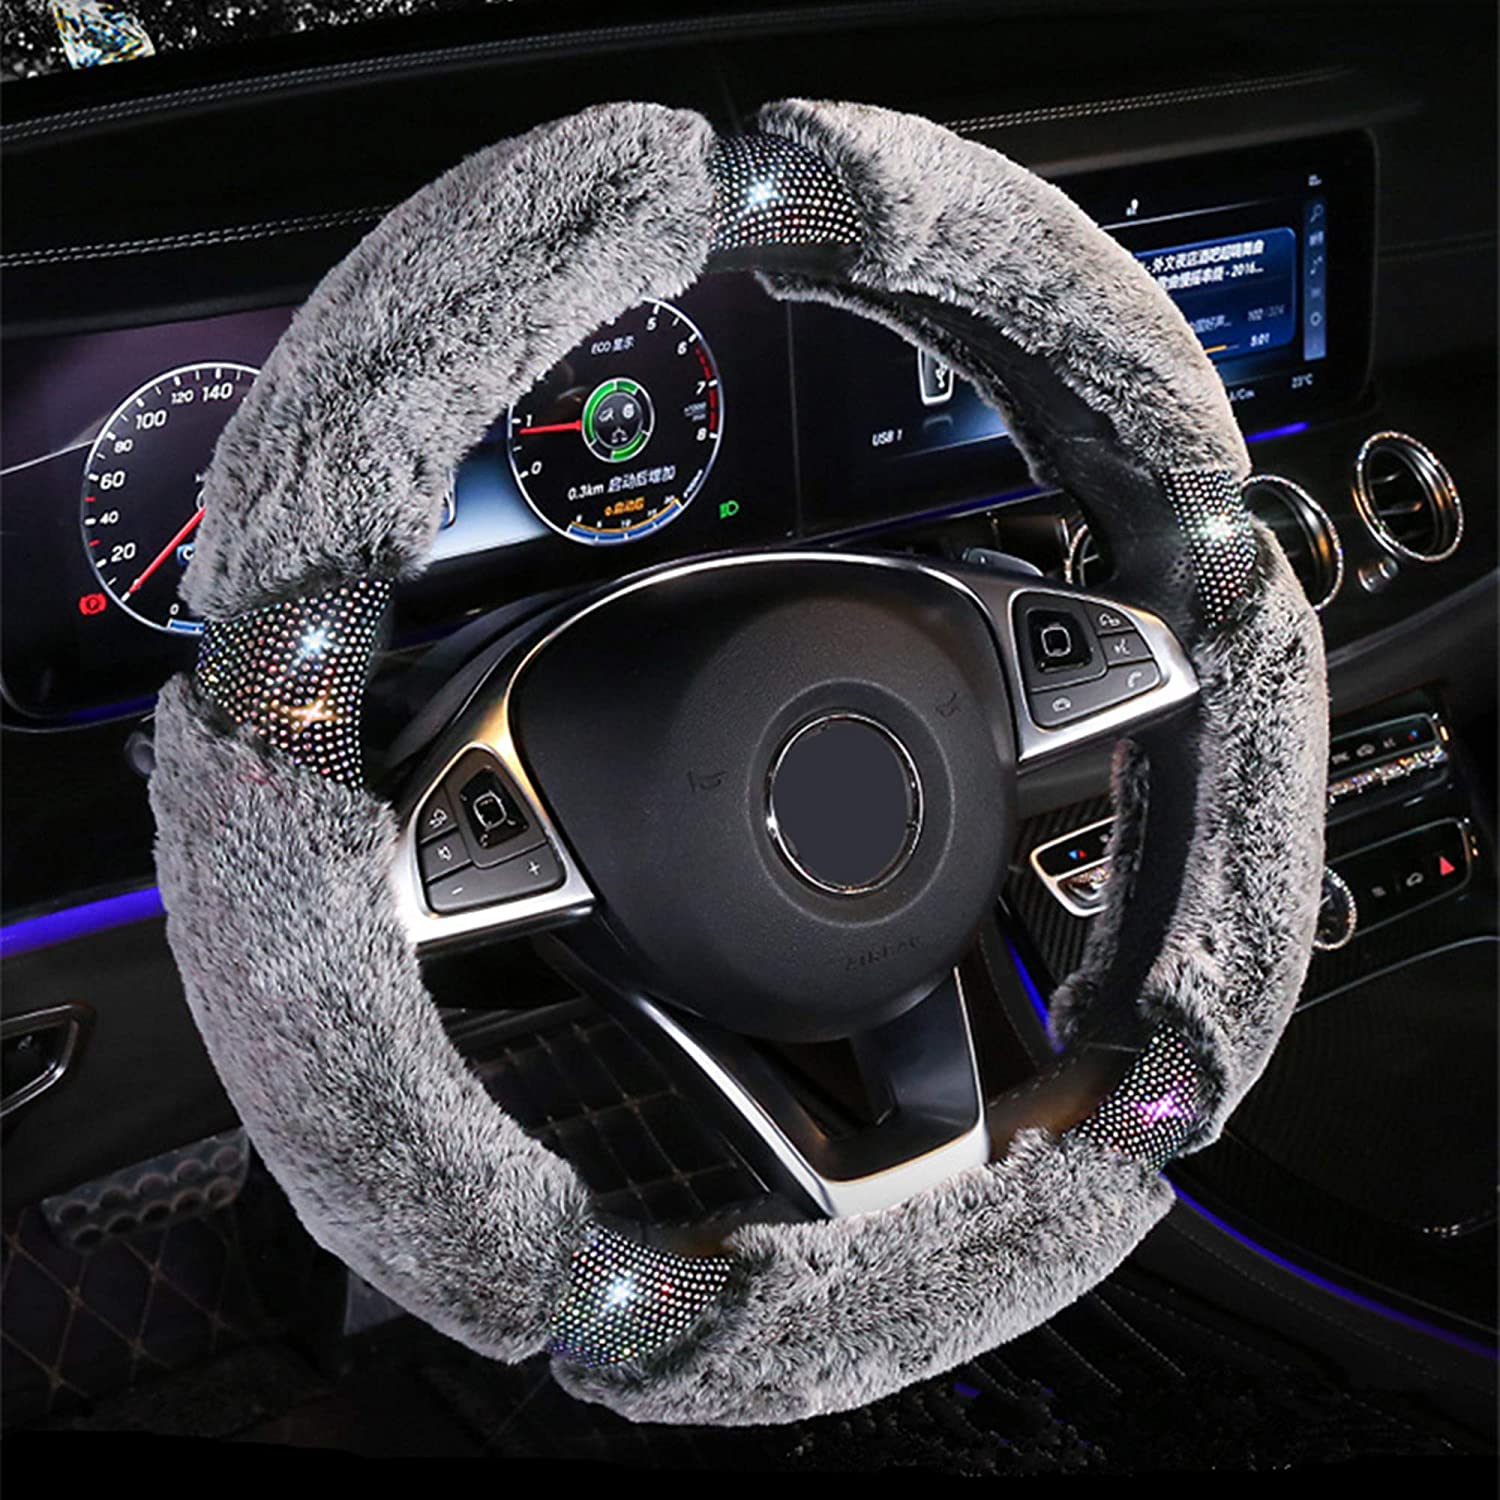 KAFEEK Very popular Diamond Fluffy Microfiber Discount is also underway Plush Wheel Cover with Steering